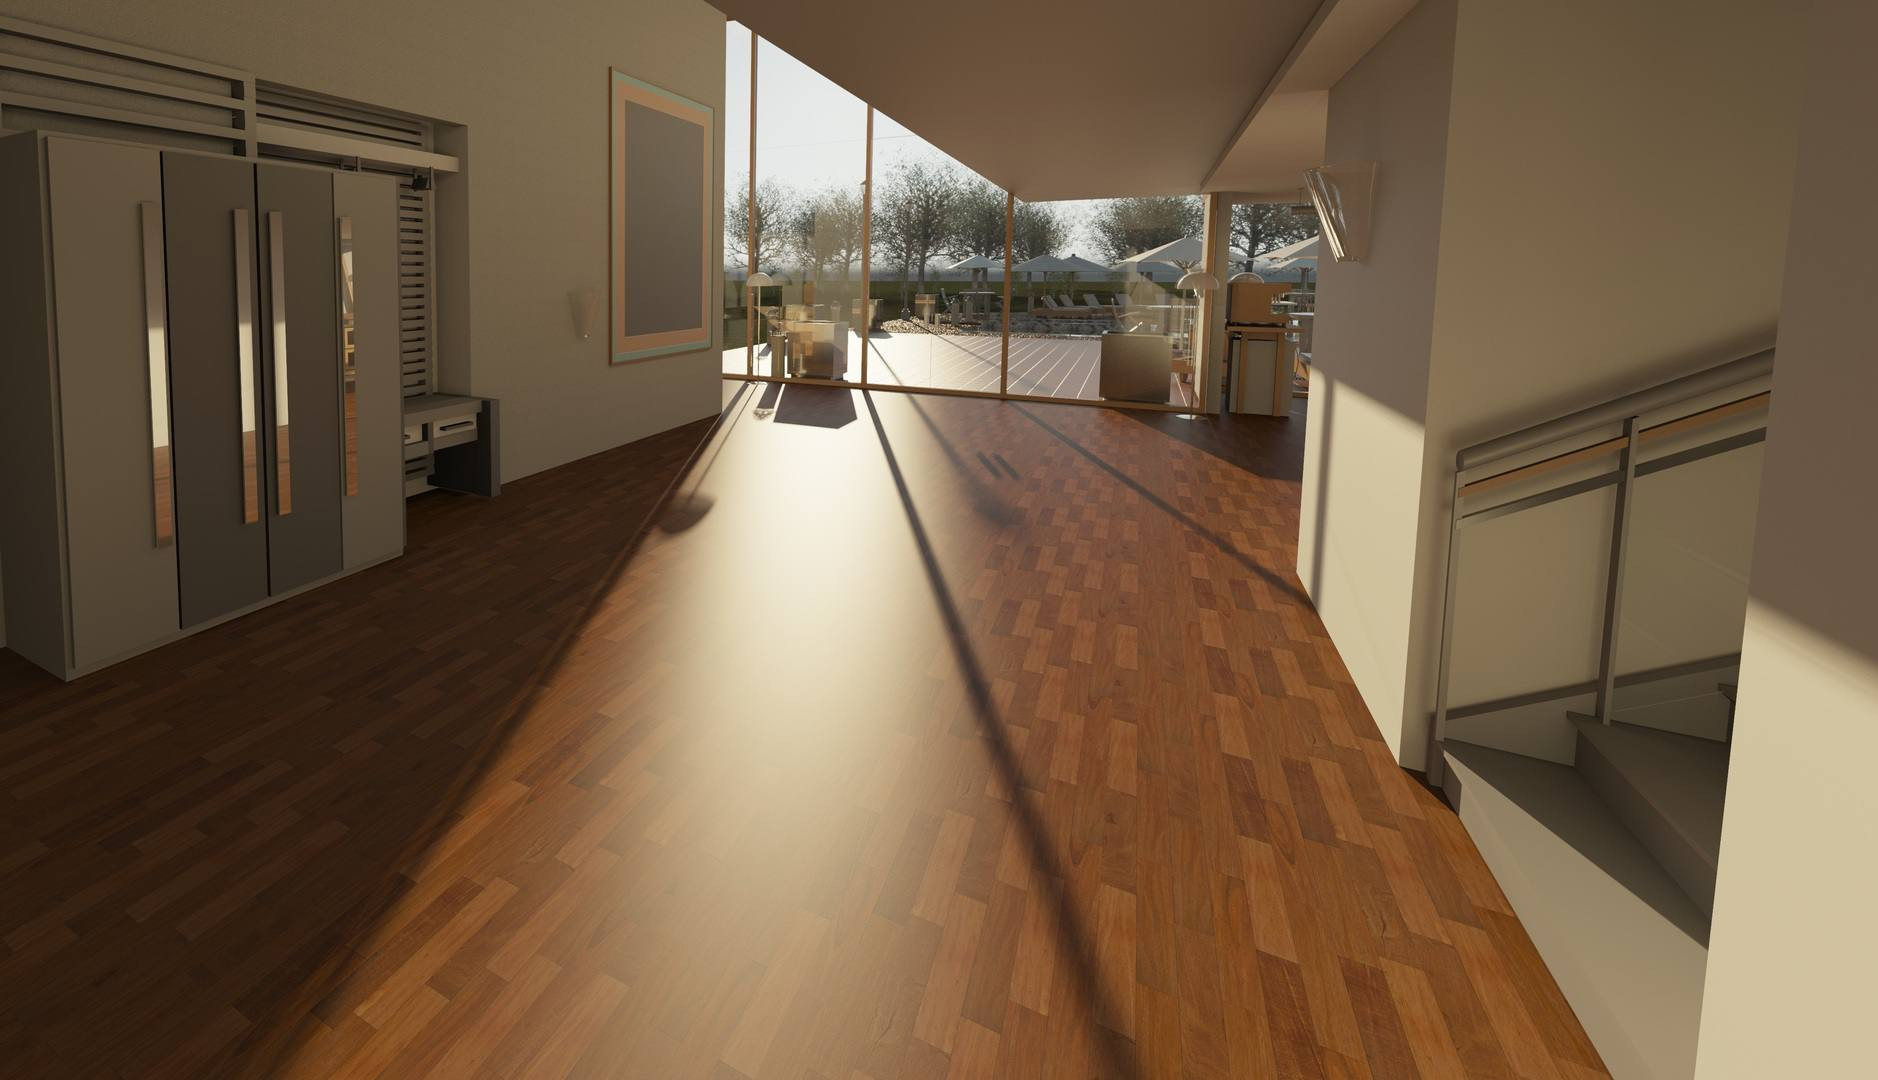 zoltech hardwood flooring of common flooring types currently used in renovation and building intended for architecture wood house floor interior window 917178 pxhere com 5ba27a2cc9e77c00503b27b9